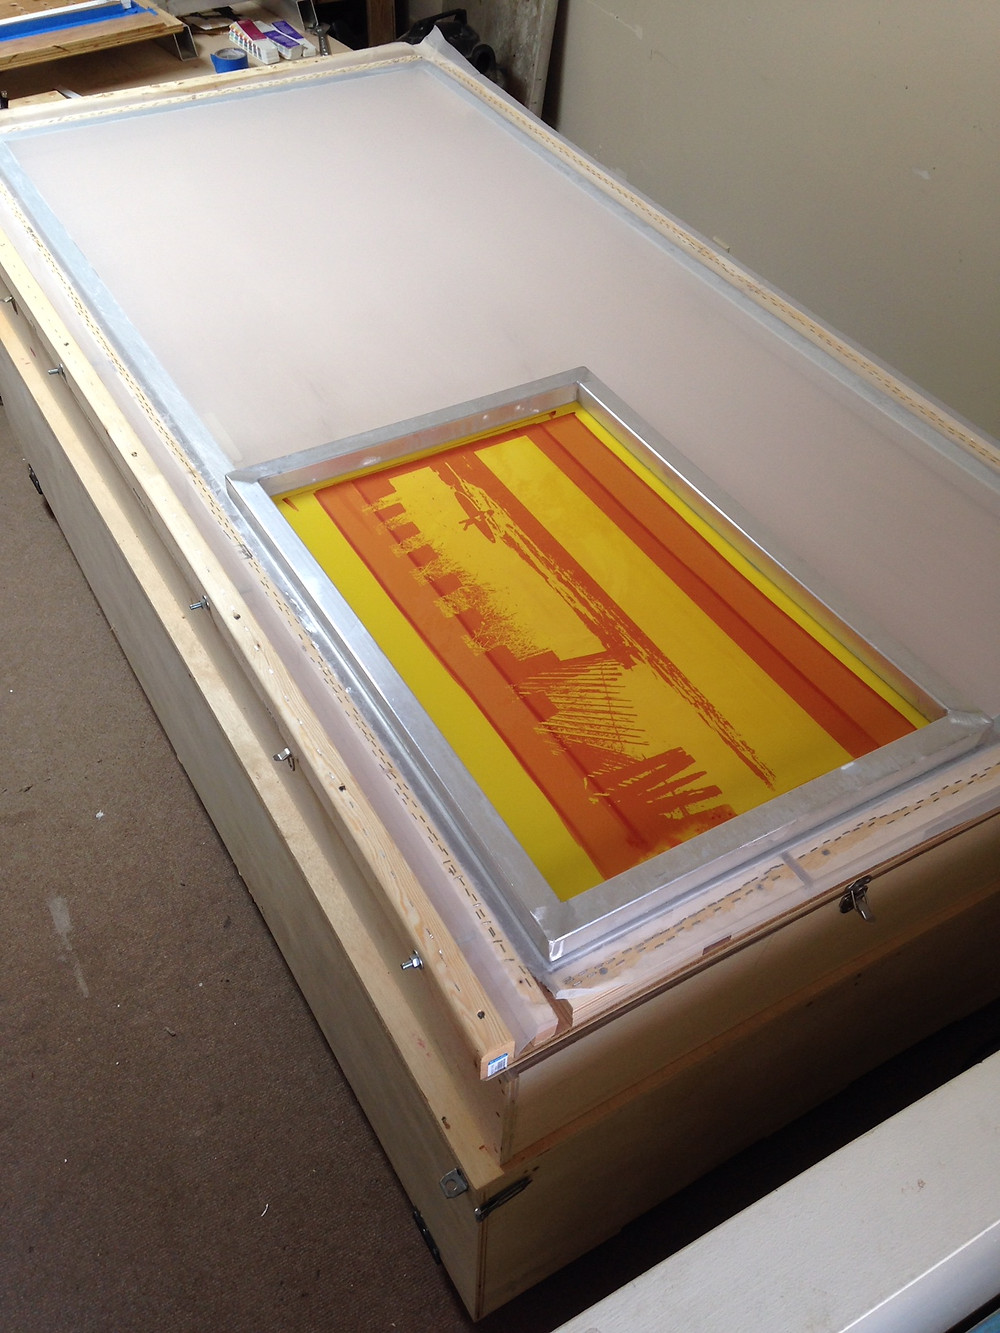 New Large Screen for screen printing!